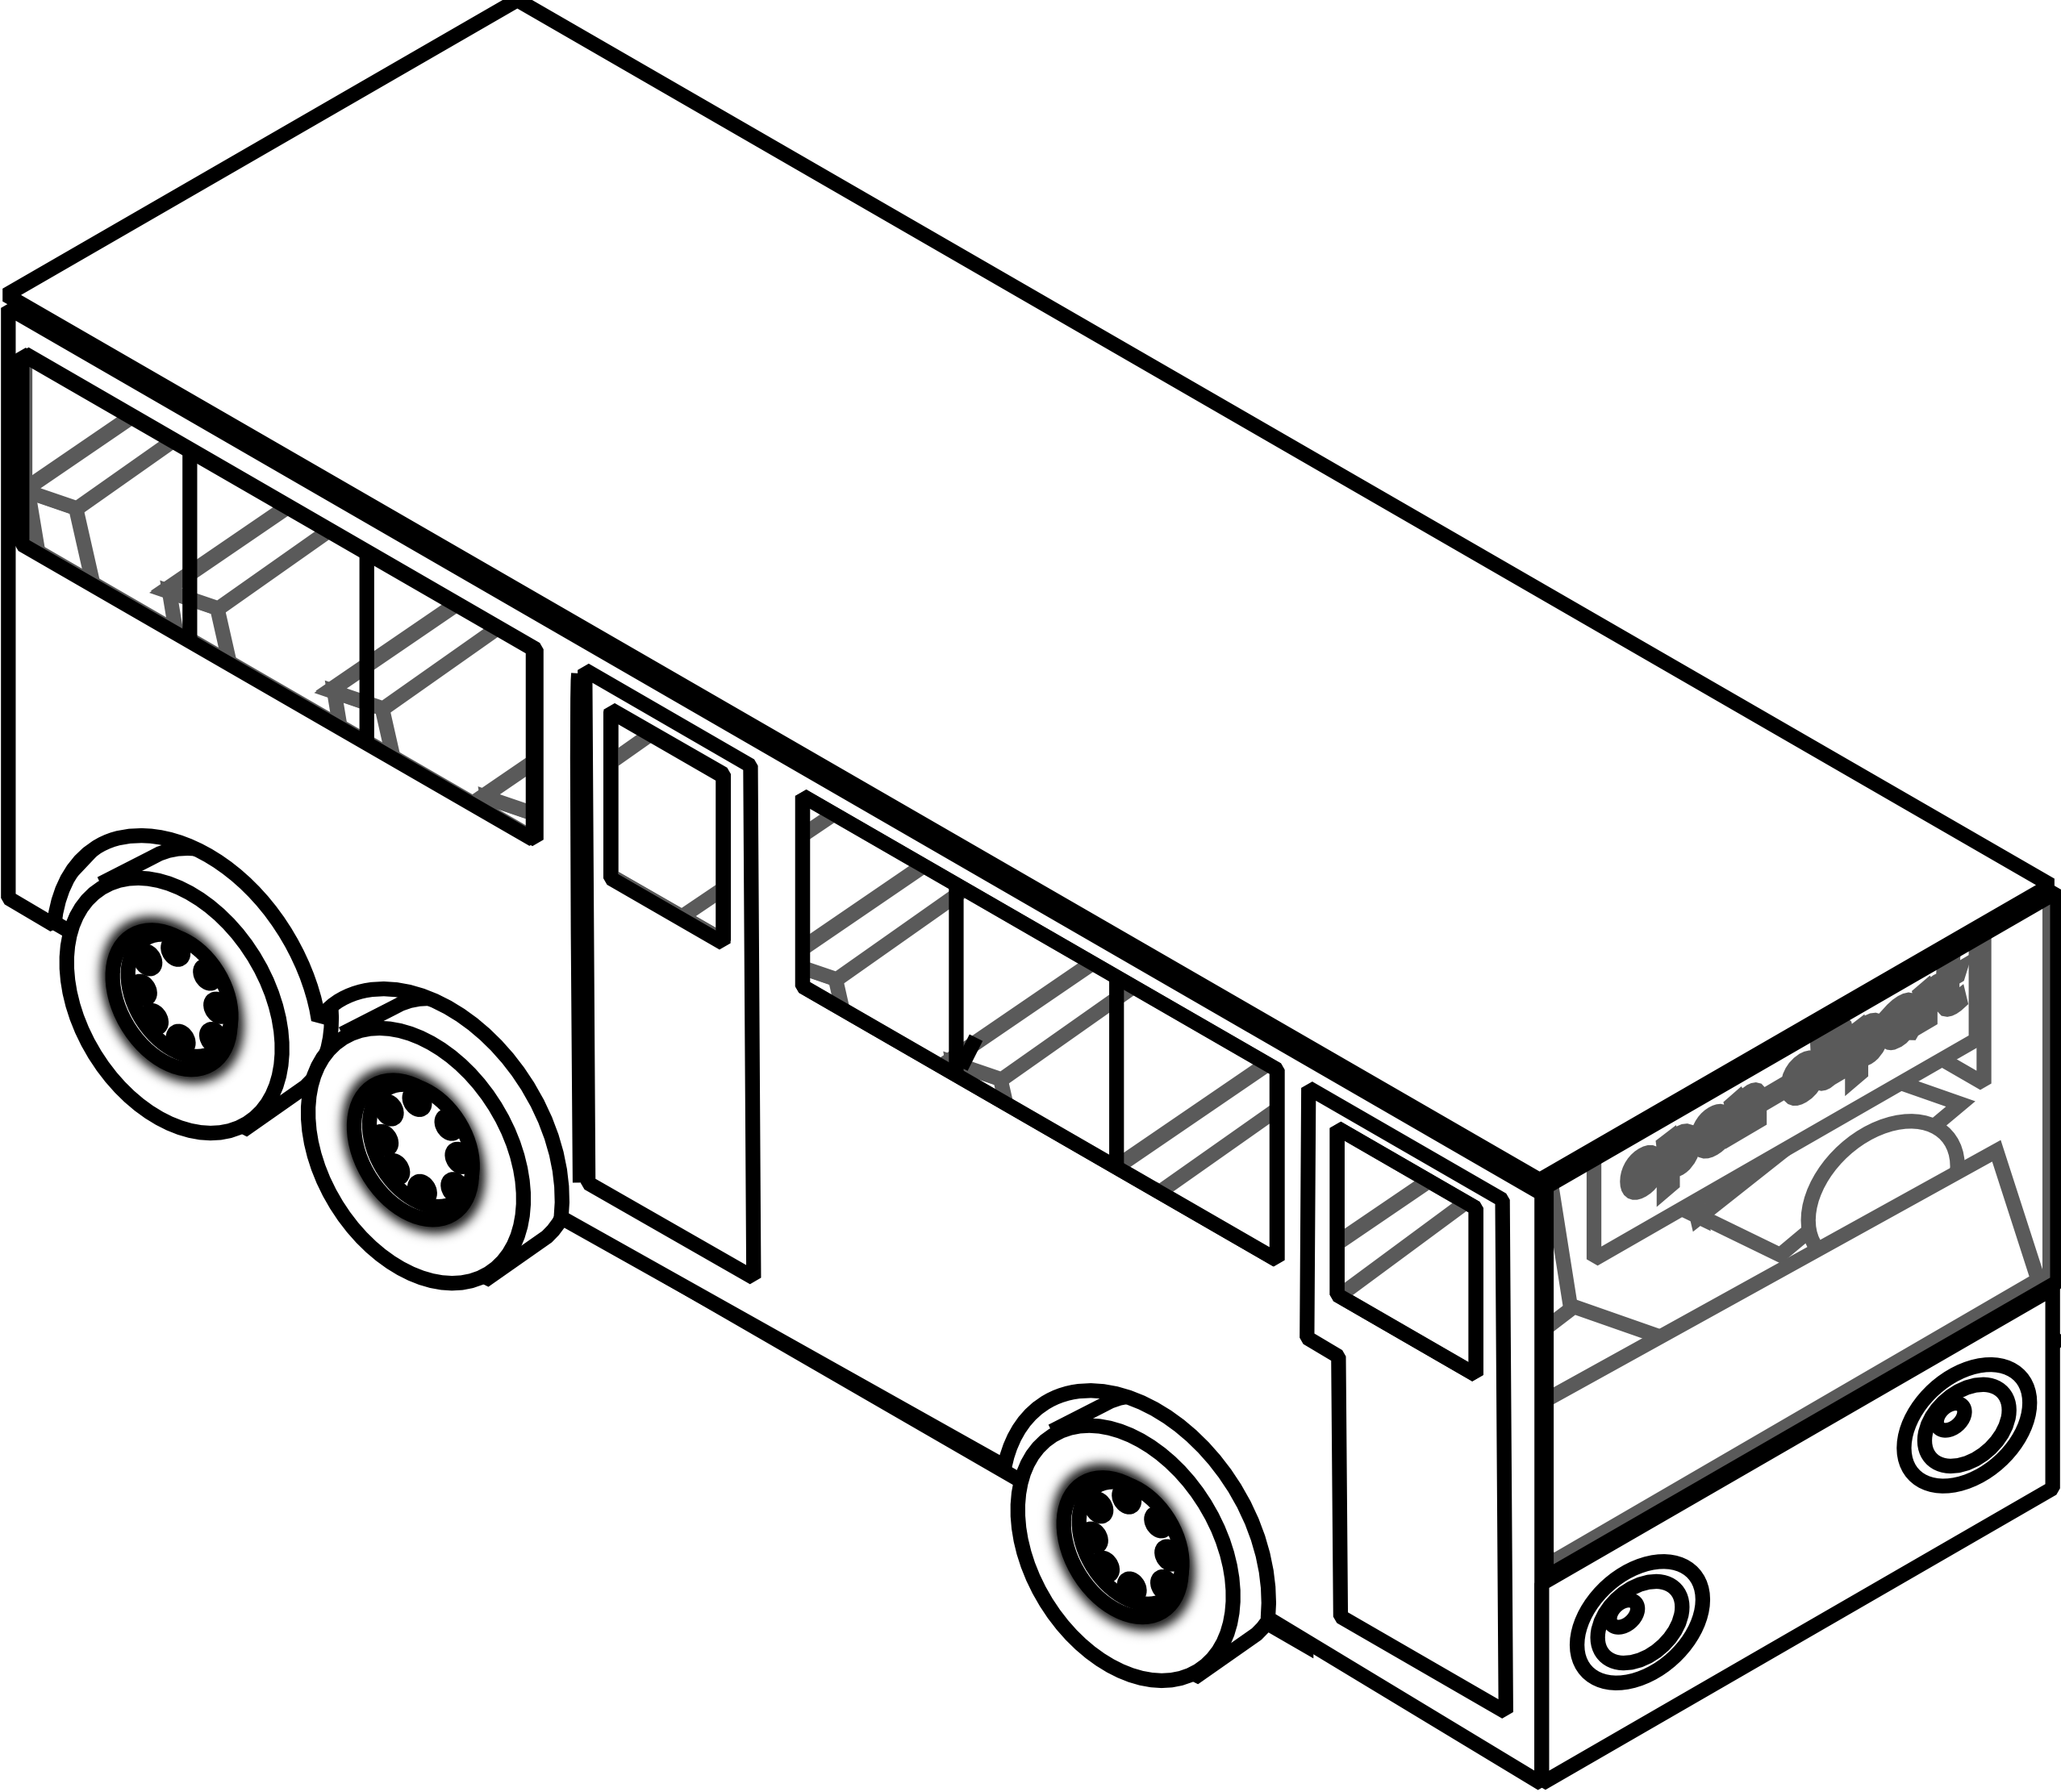 2555x2222 Collection Of Free Lowrider Drawing Model Download On Ui Ex